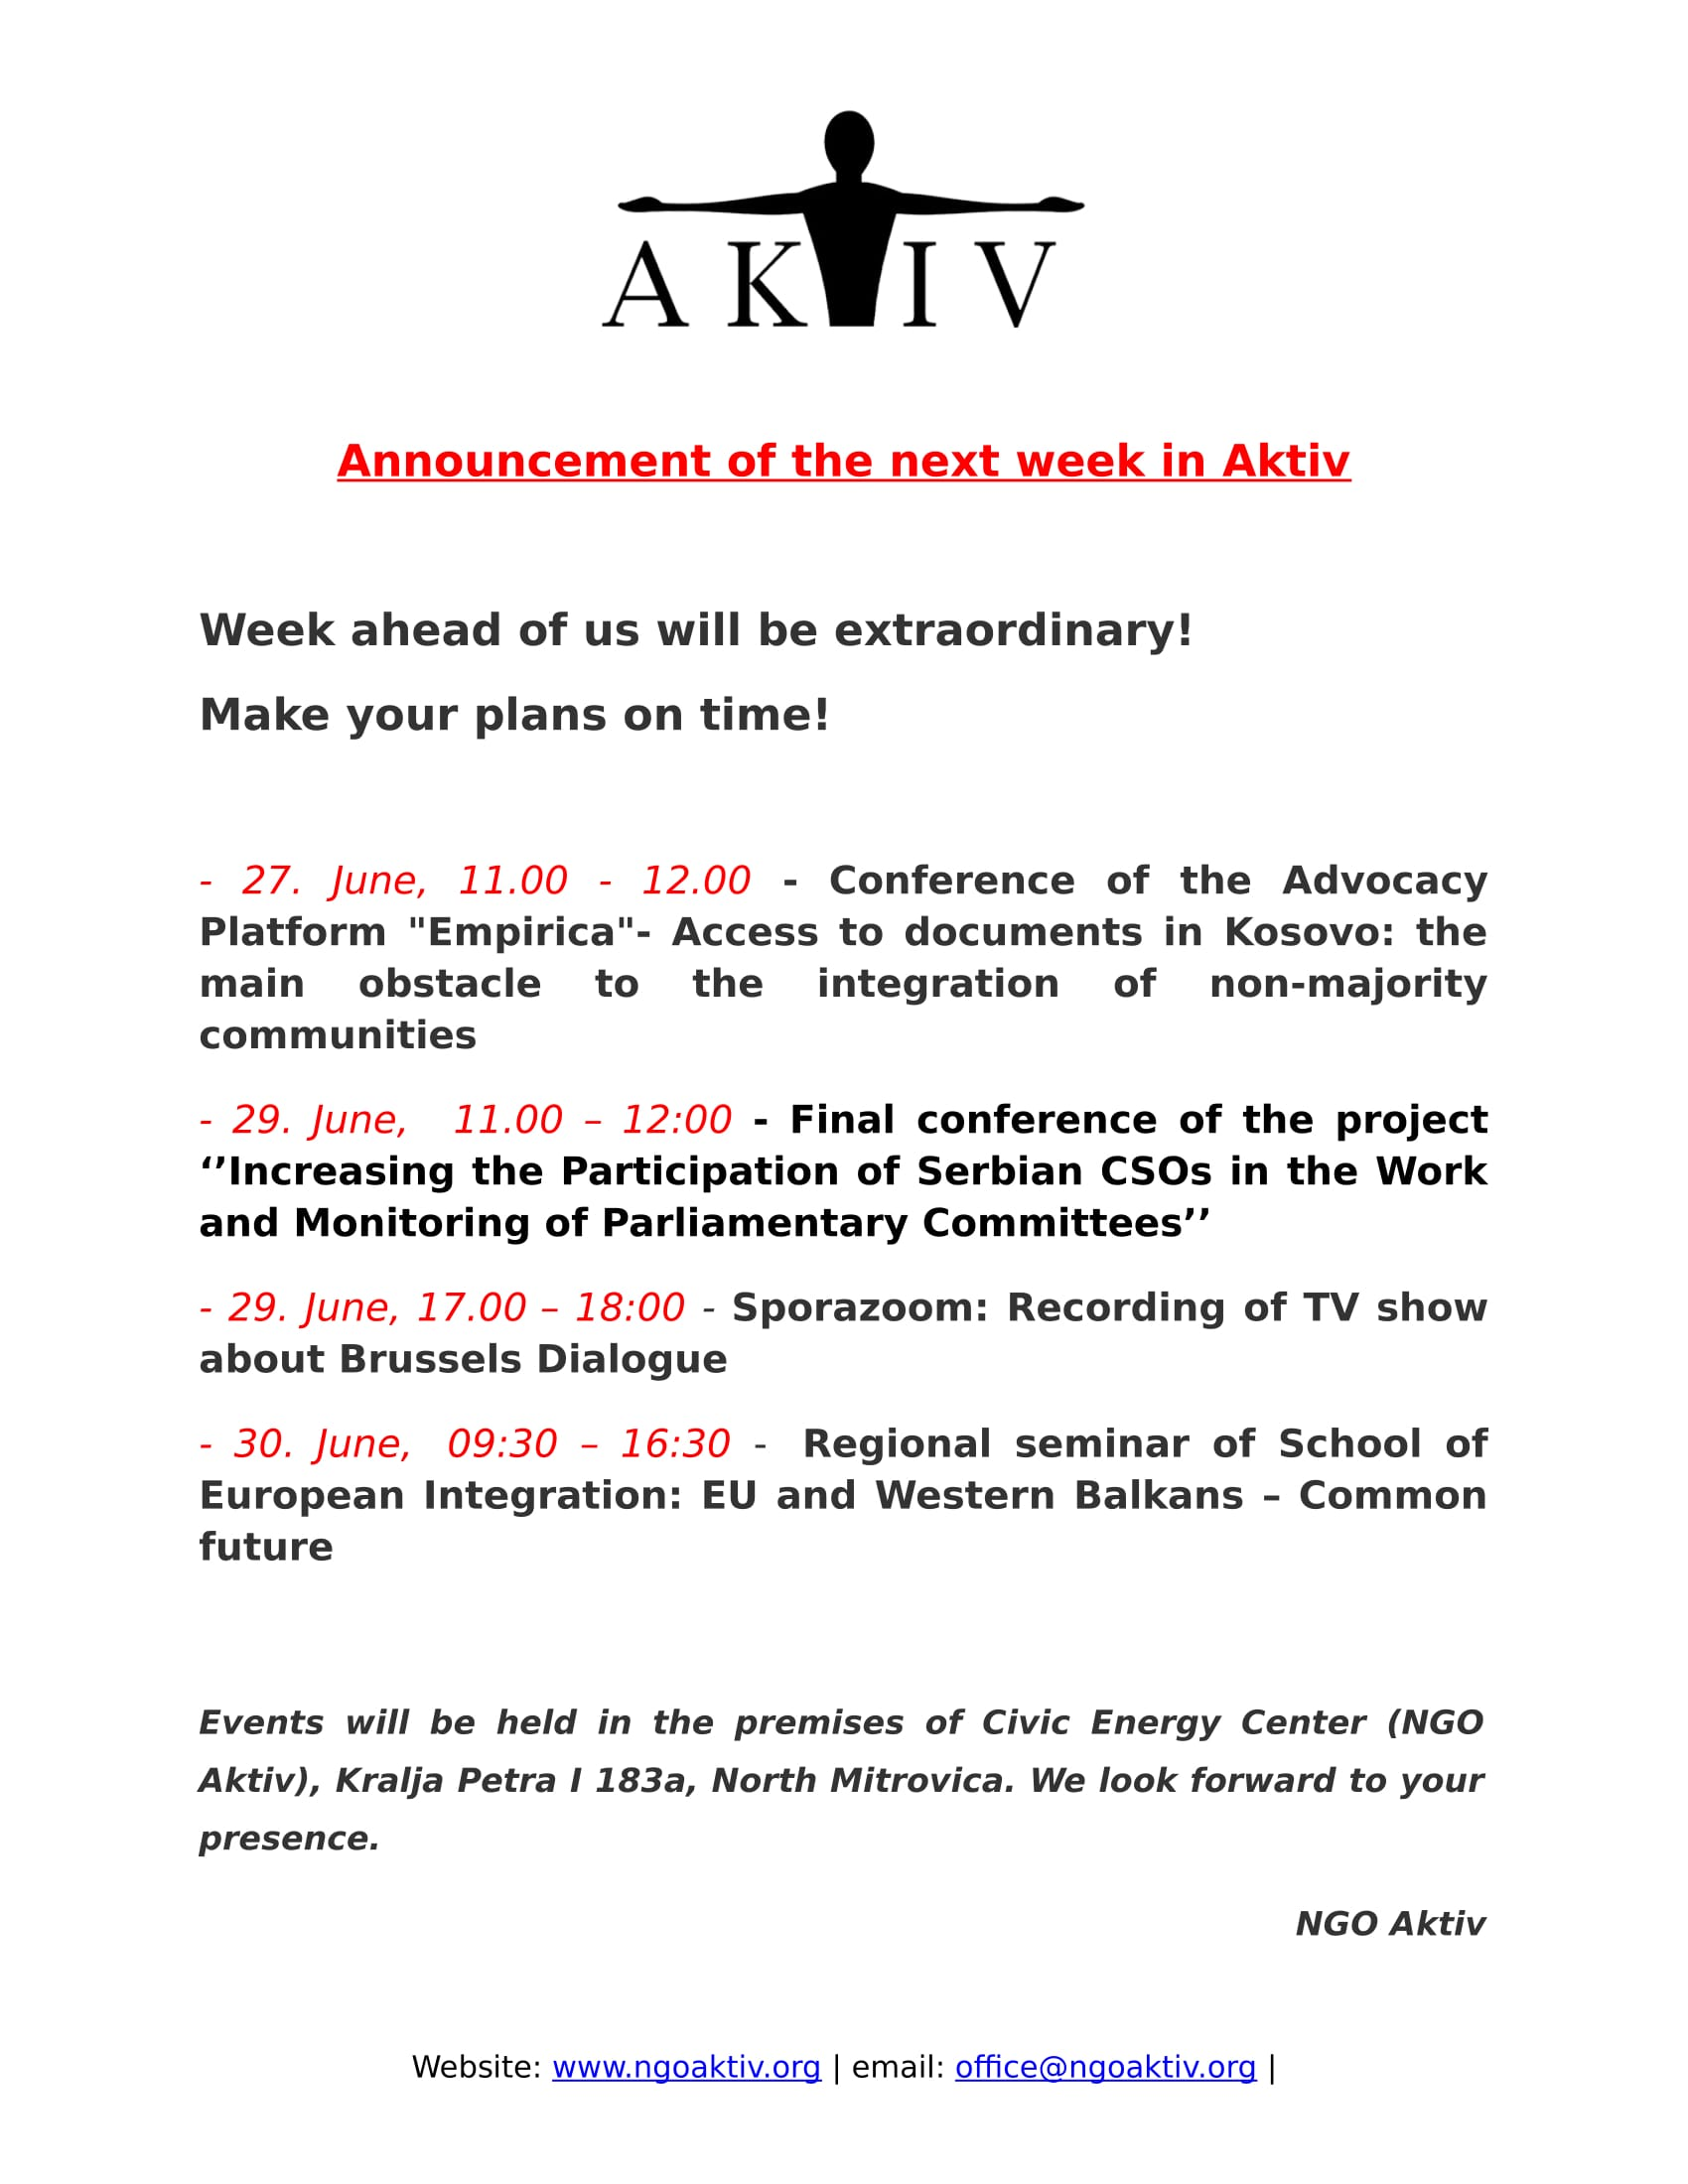 Announcement of events for the next week: cinema-Moscow :) 6